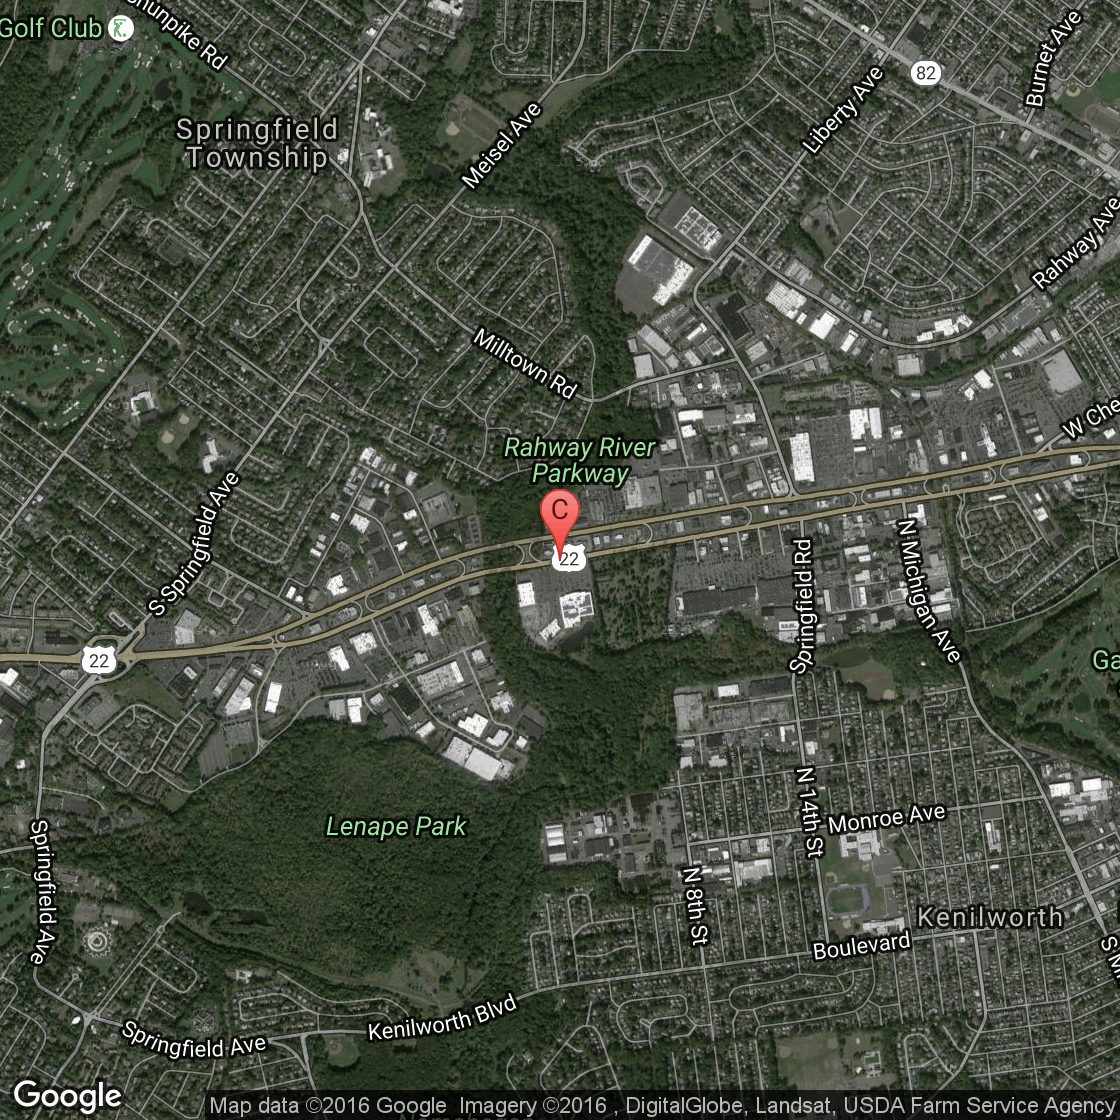 restaurants on route 22 in scotch plains, new jersey   usa today